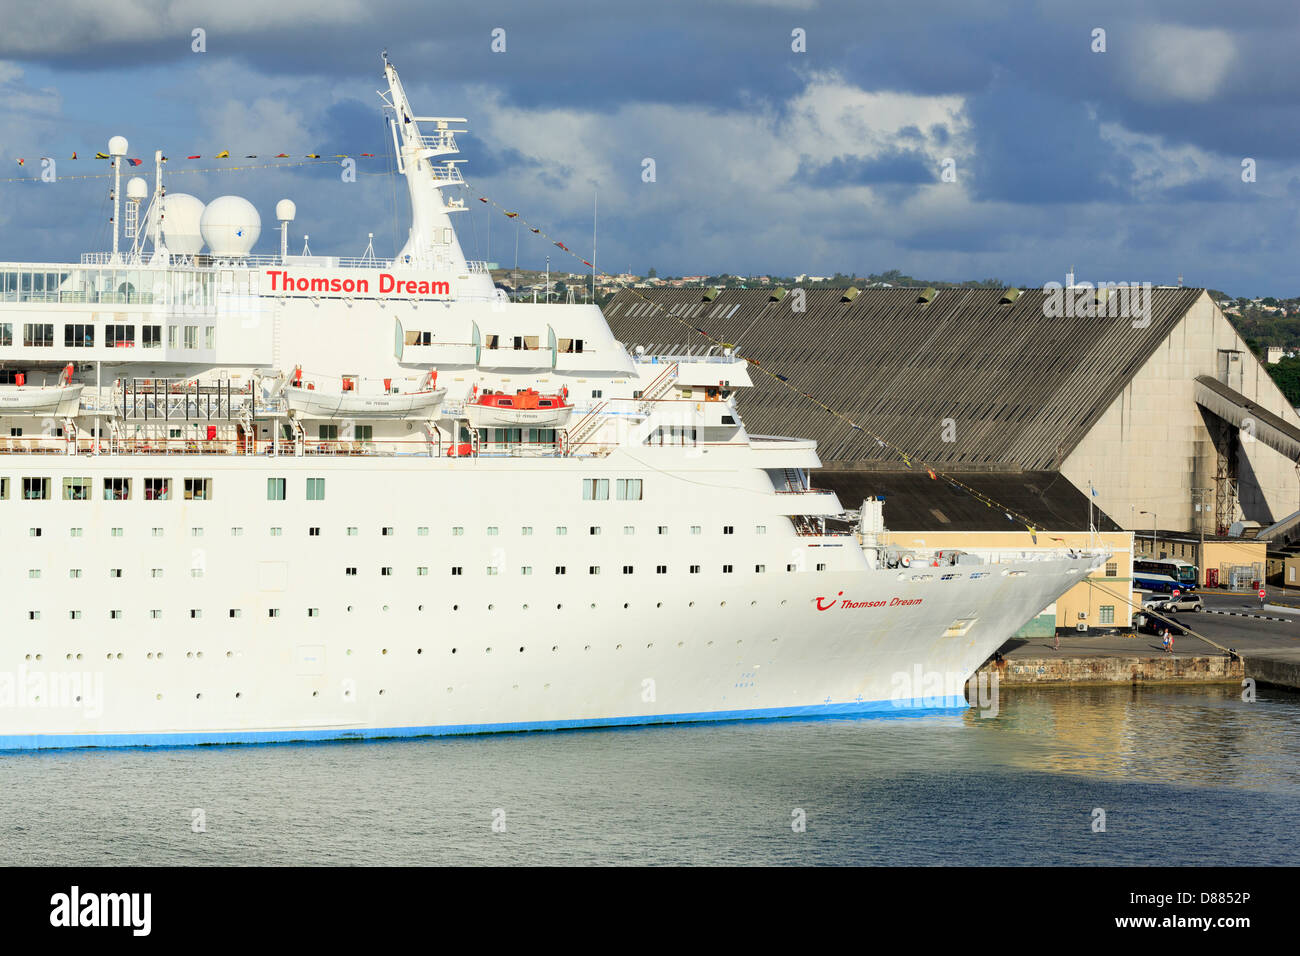 Thomson Dream Cruise Ship In Deep Water Stock Photo Royalty Free - Thomson dream cruise ship latest news